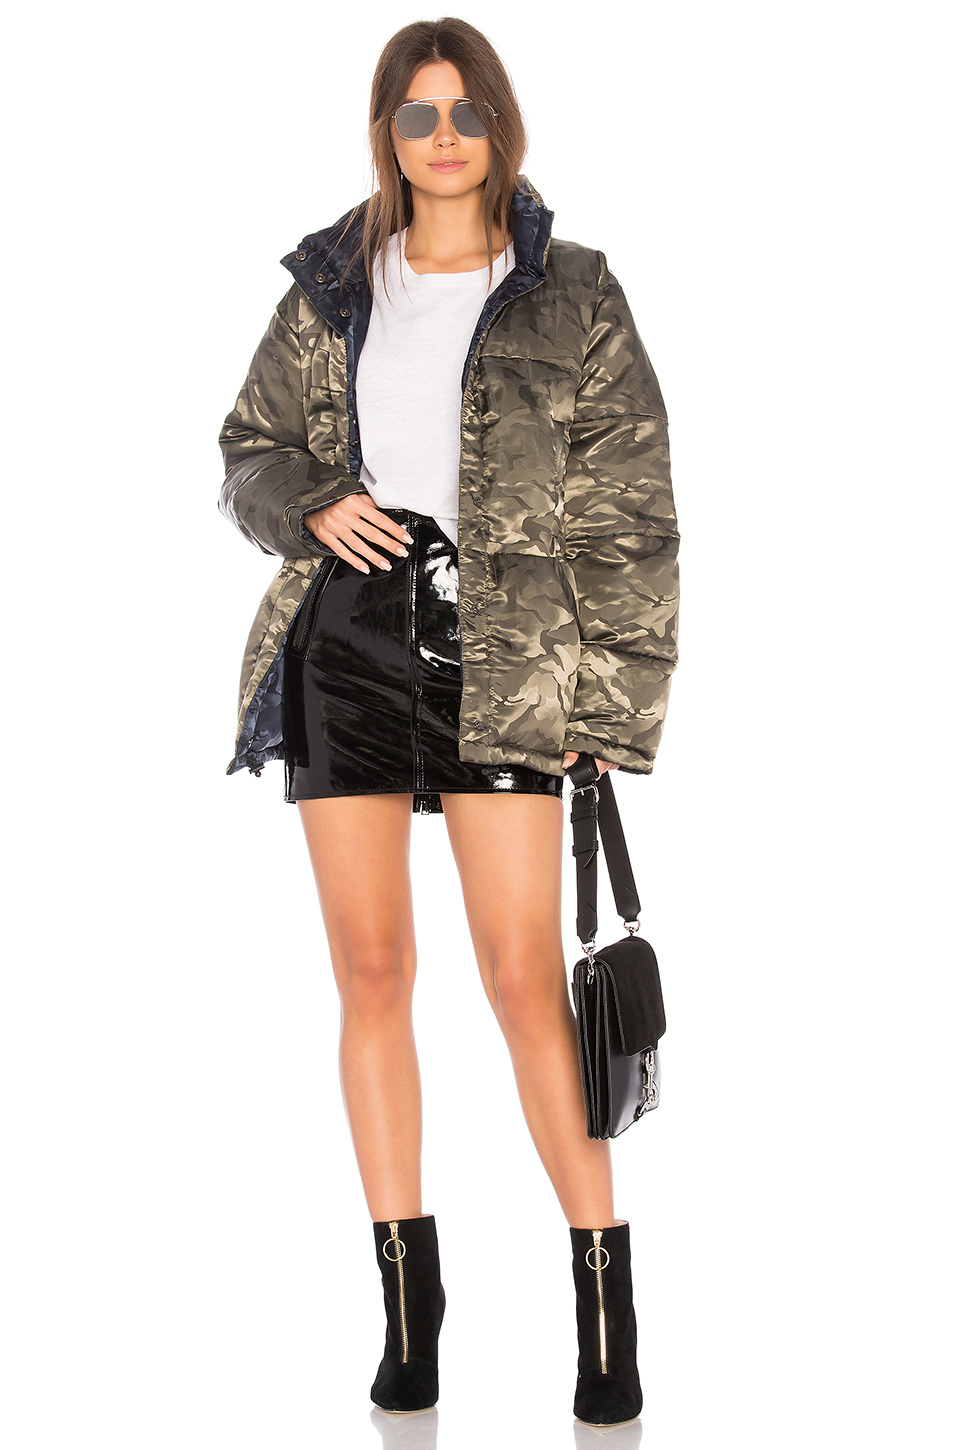 87f9f0ef11a Buy Original KENDALL + KYLIE Nylon Reversible Puffer Jacket at ...